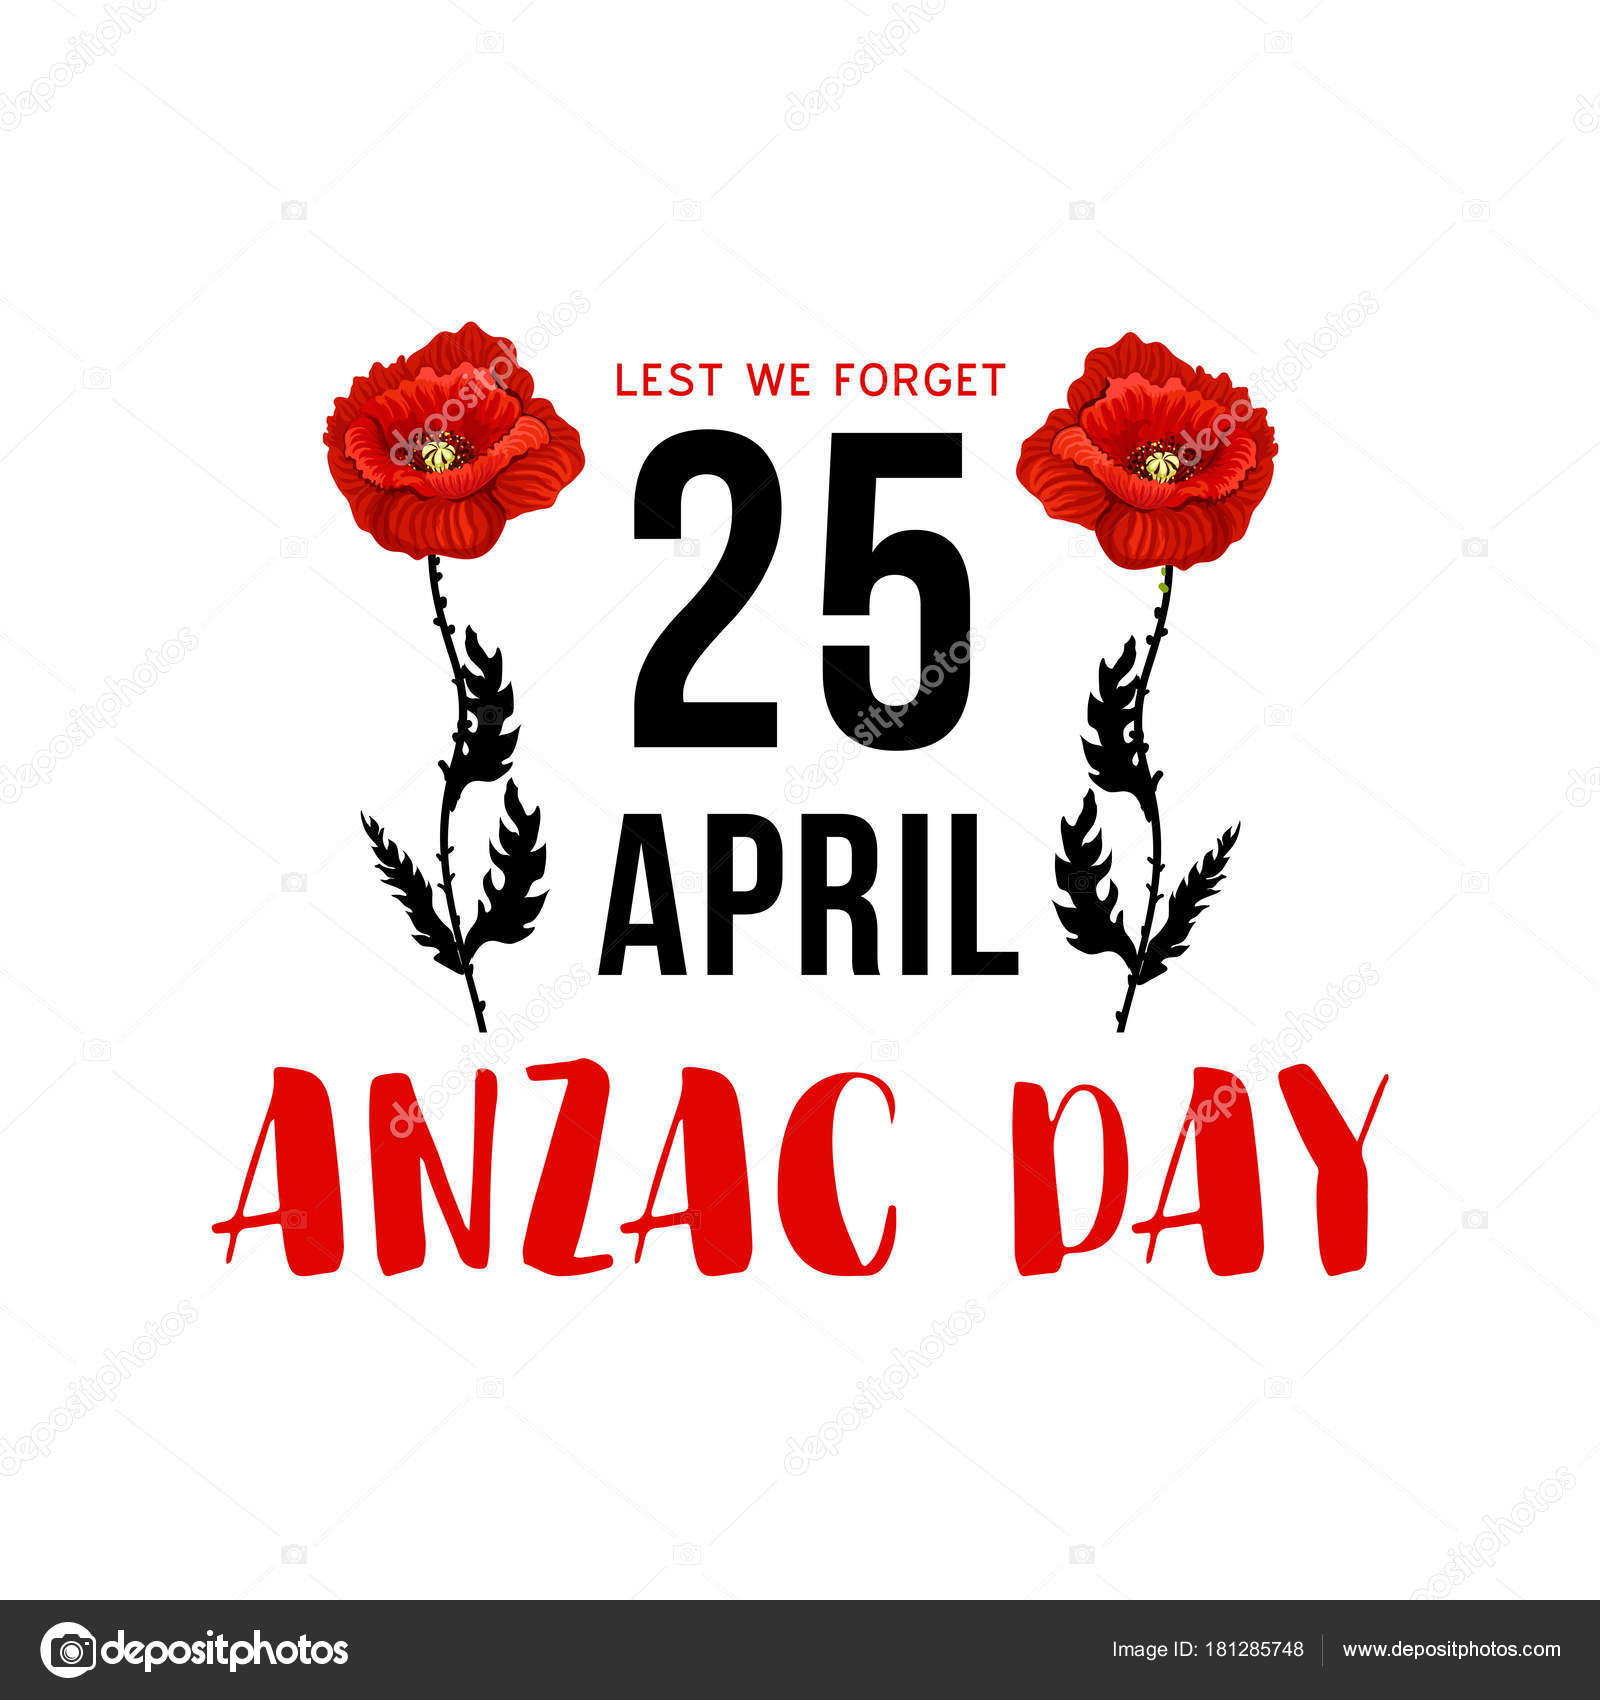 Anzac day 25 april memorial card with red poppy stock vector anzac day 25 april memorial card with red poppy flower australian and new zealand army corps remembrance day and world war campaign anniversary floral card mightylinksfo